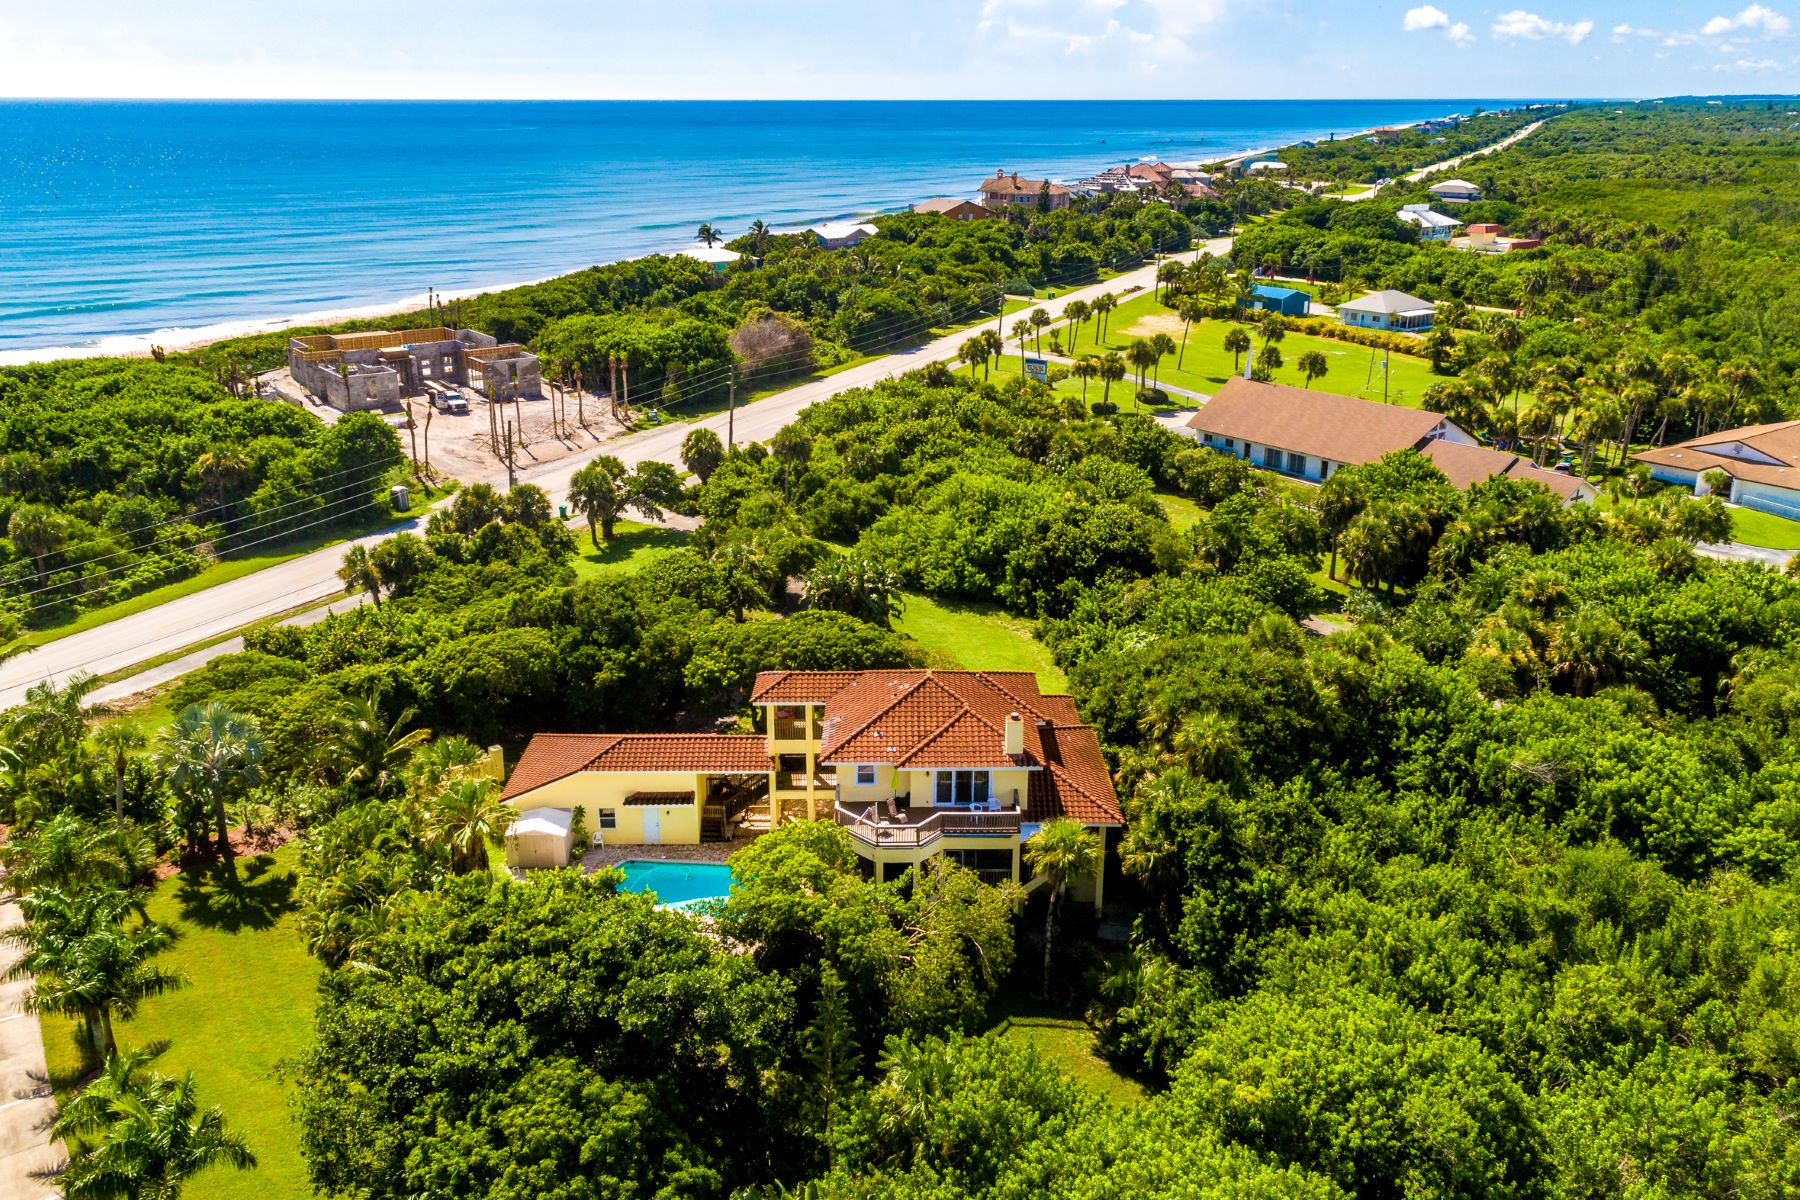 3 1/2 Acre Riverfront Estate in Private, Nature Rich Setting 8210 S Highway A1A Melbourne Beach, Floride 32951 États-Unis